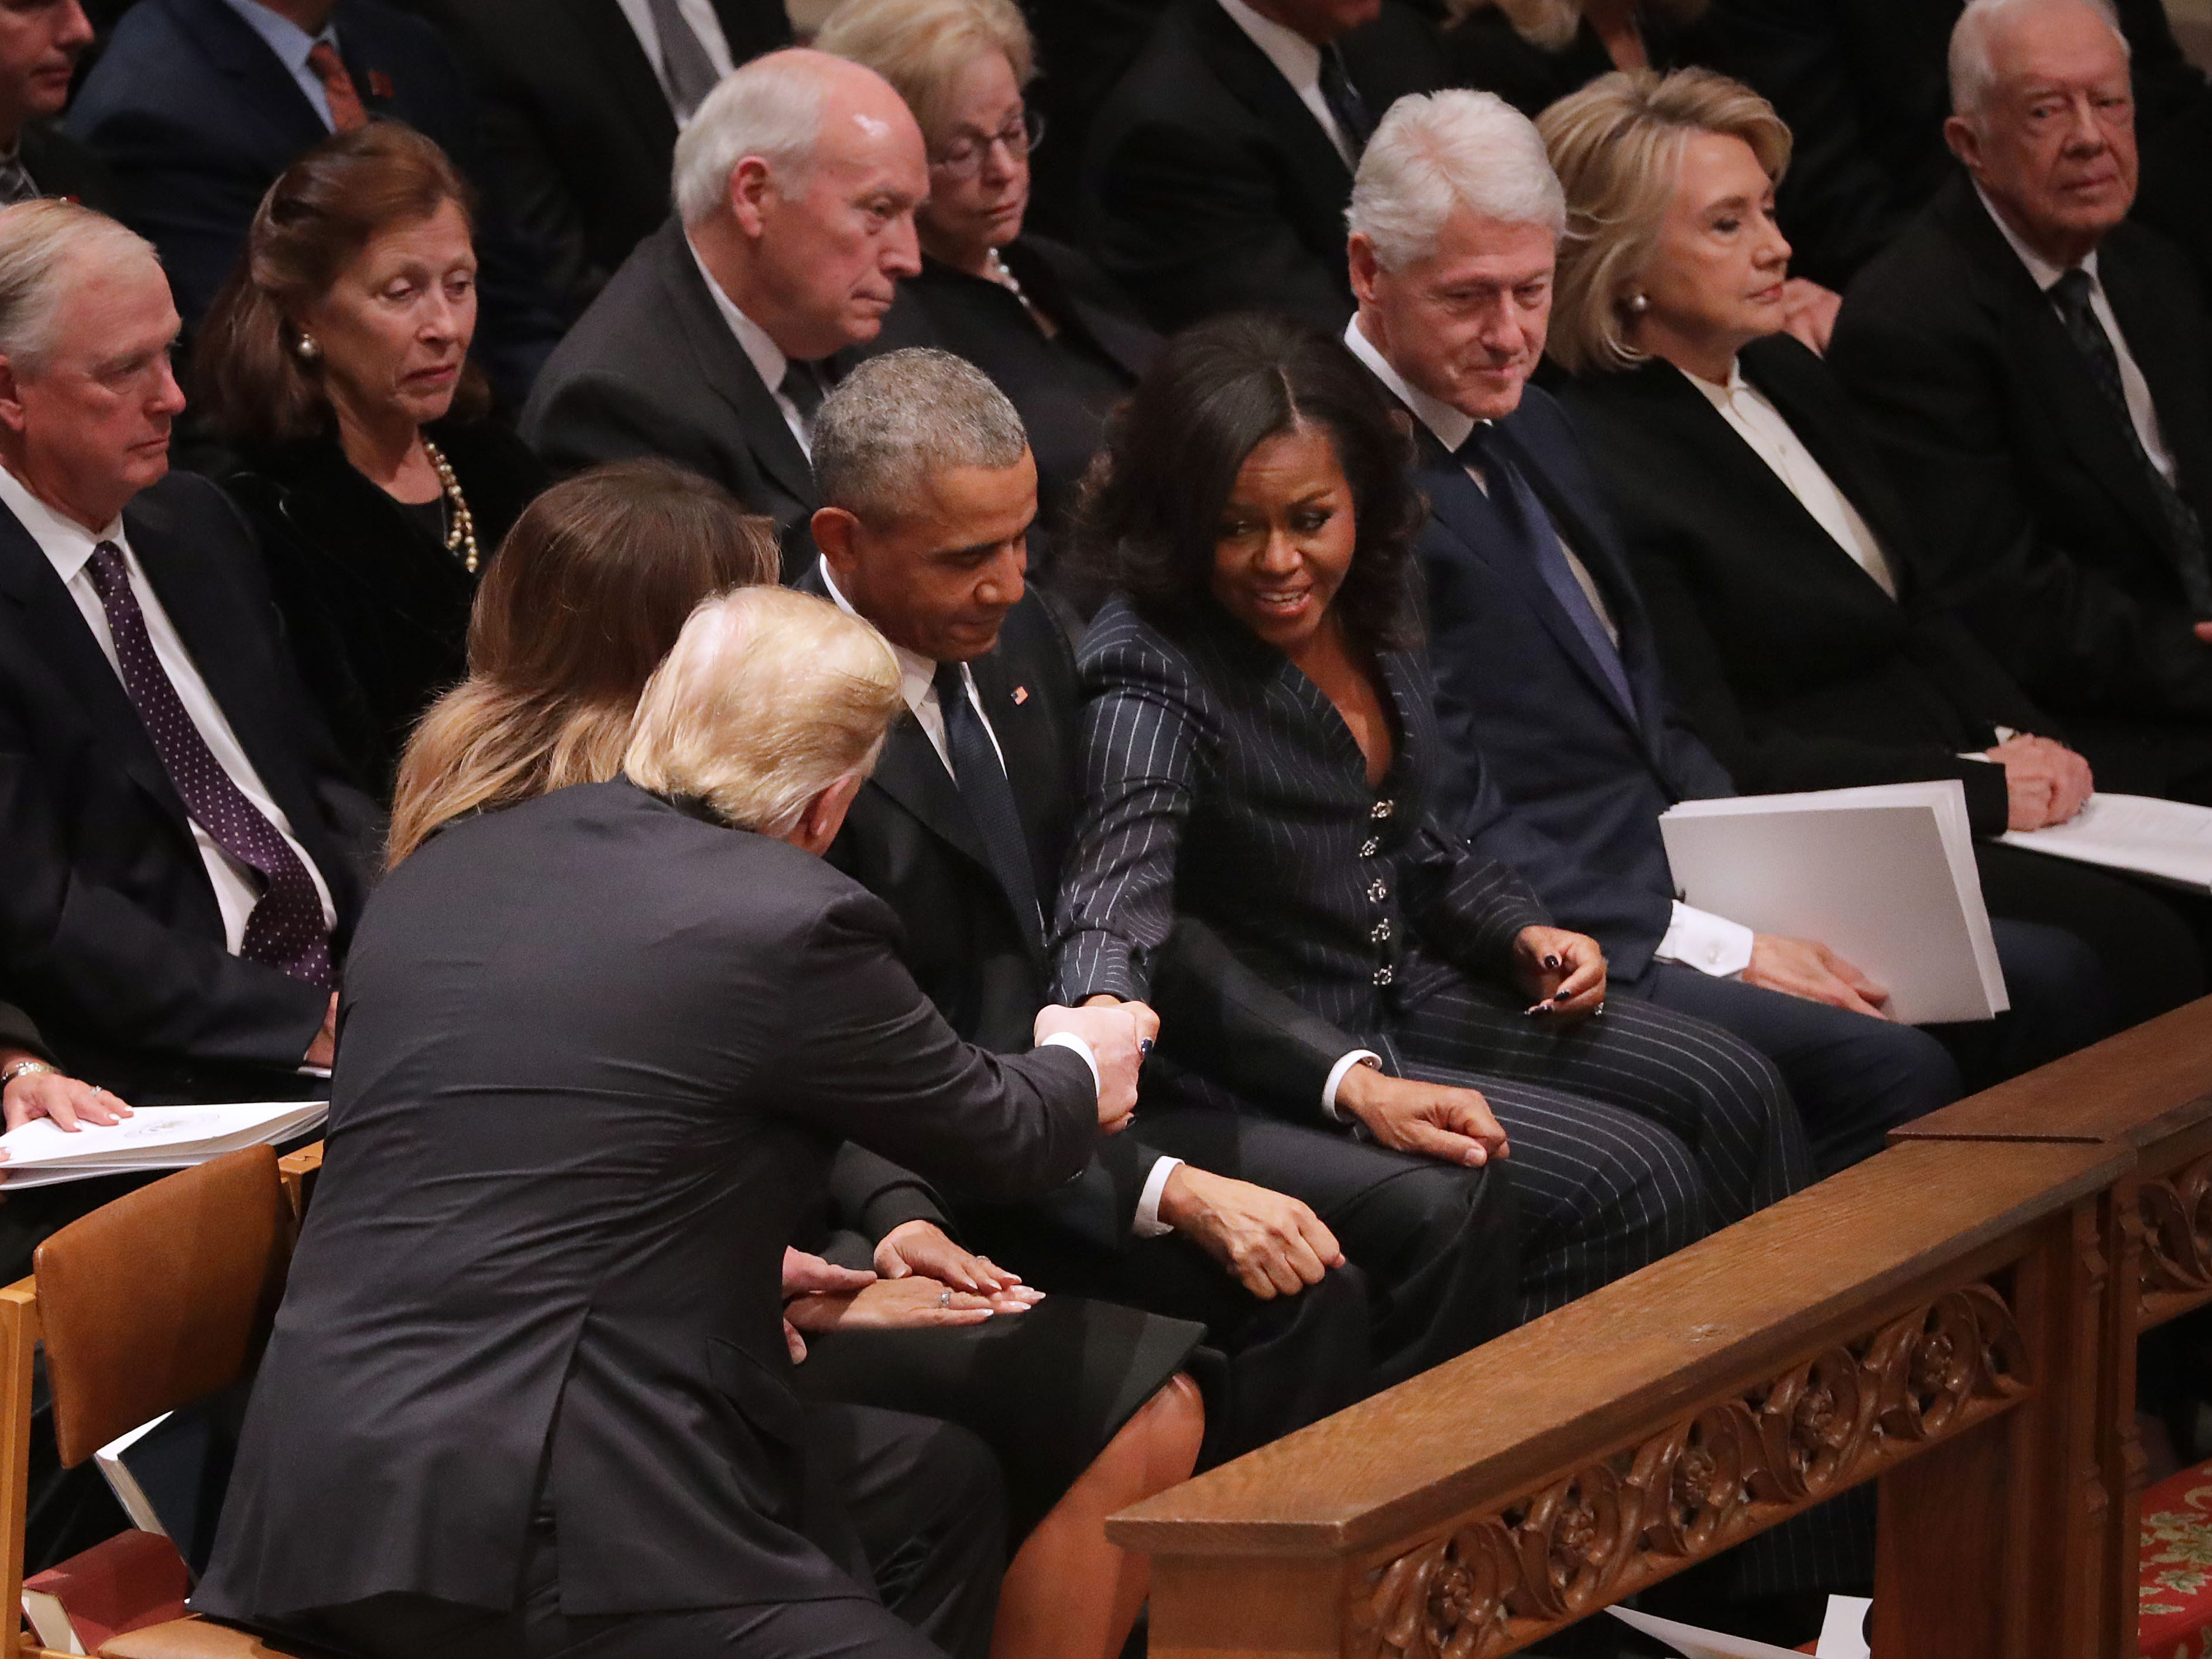 President Donald Trump and first lady Melania Trump greet former President Barack Obama and Michelle Obama as they join other former presidents and vice presidents and their spouses for the state funeral for former President George H.W. Bush at the National Cathedral, Dec. 5, 2018, in Washington.